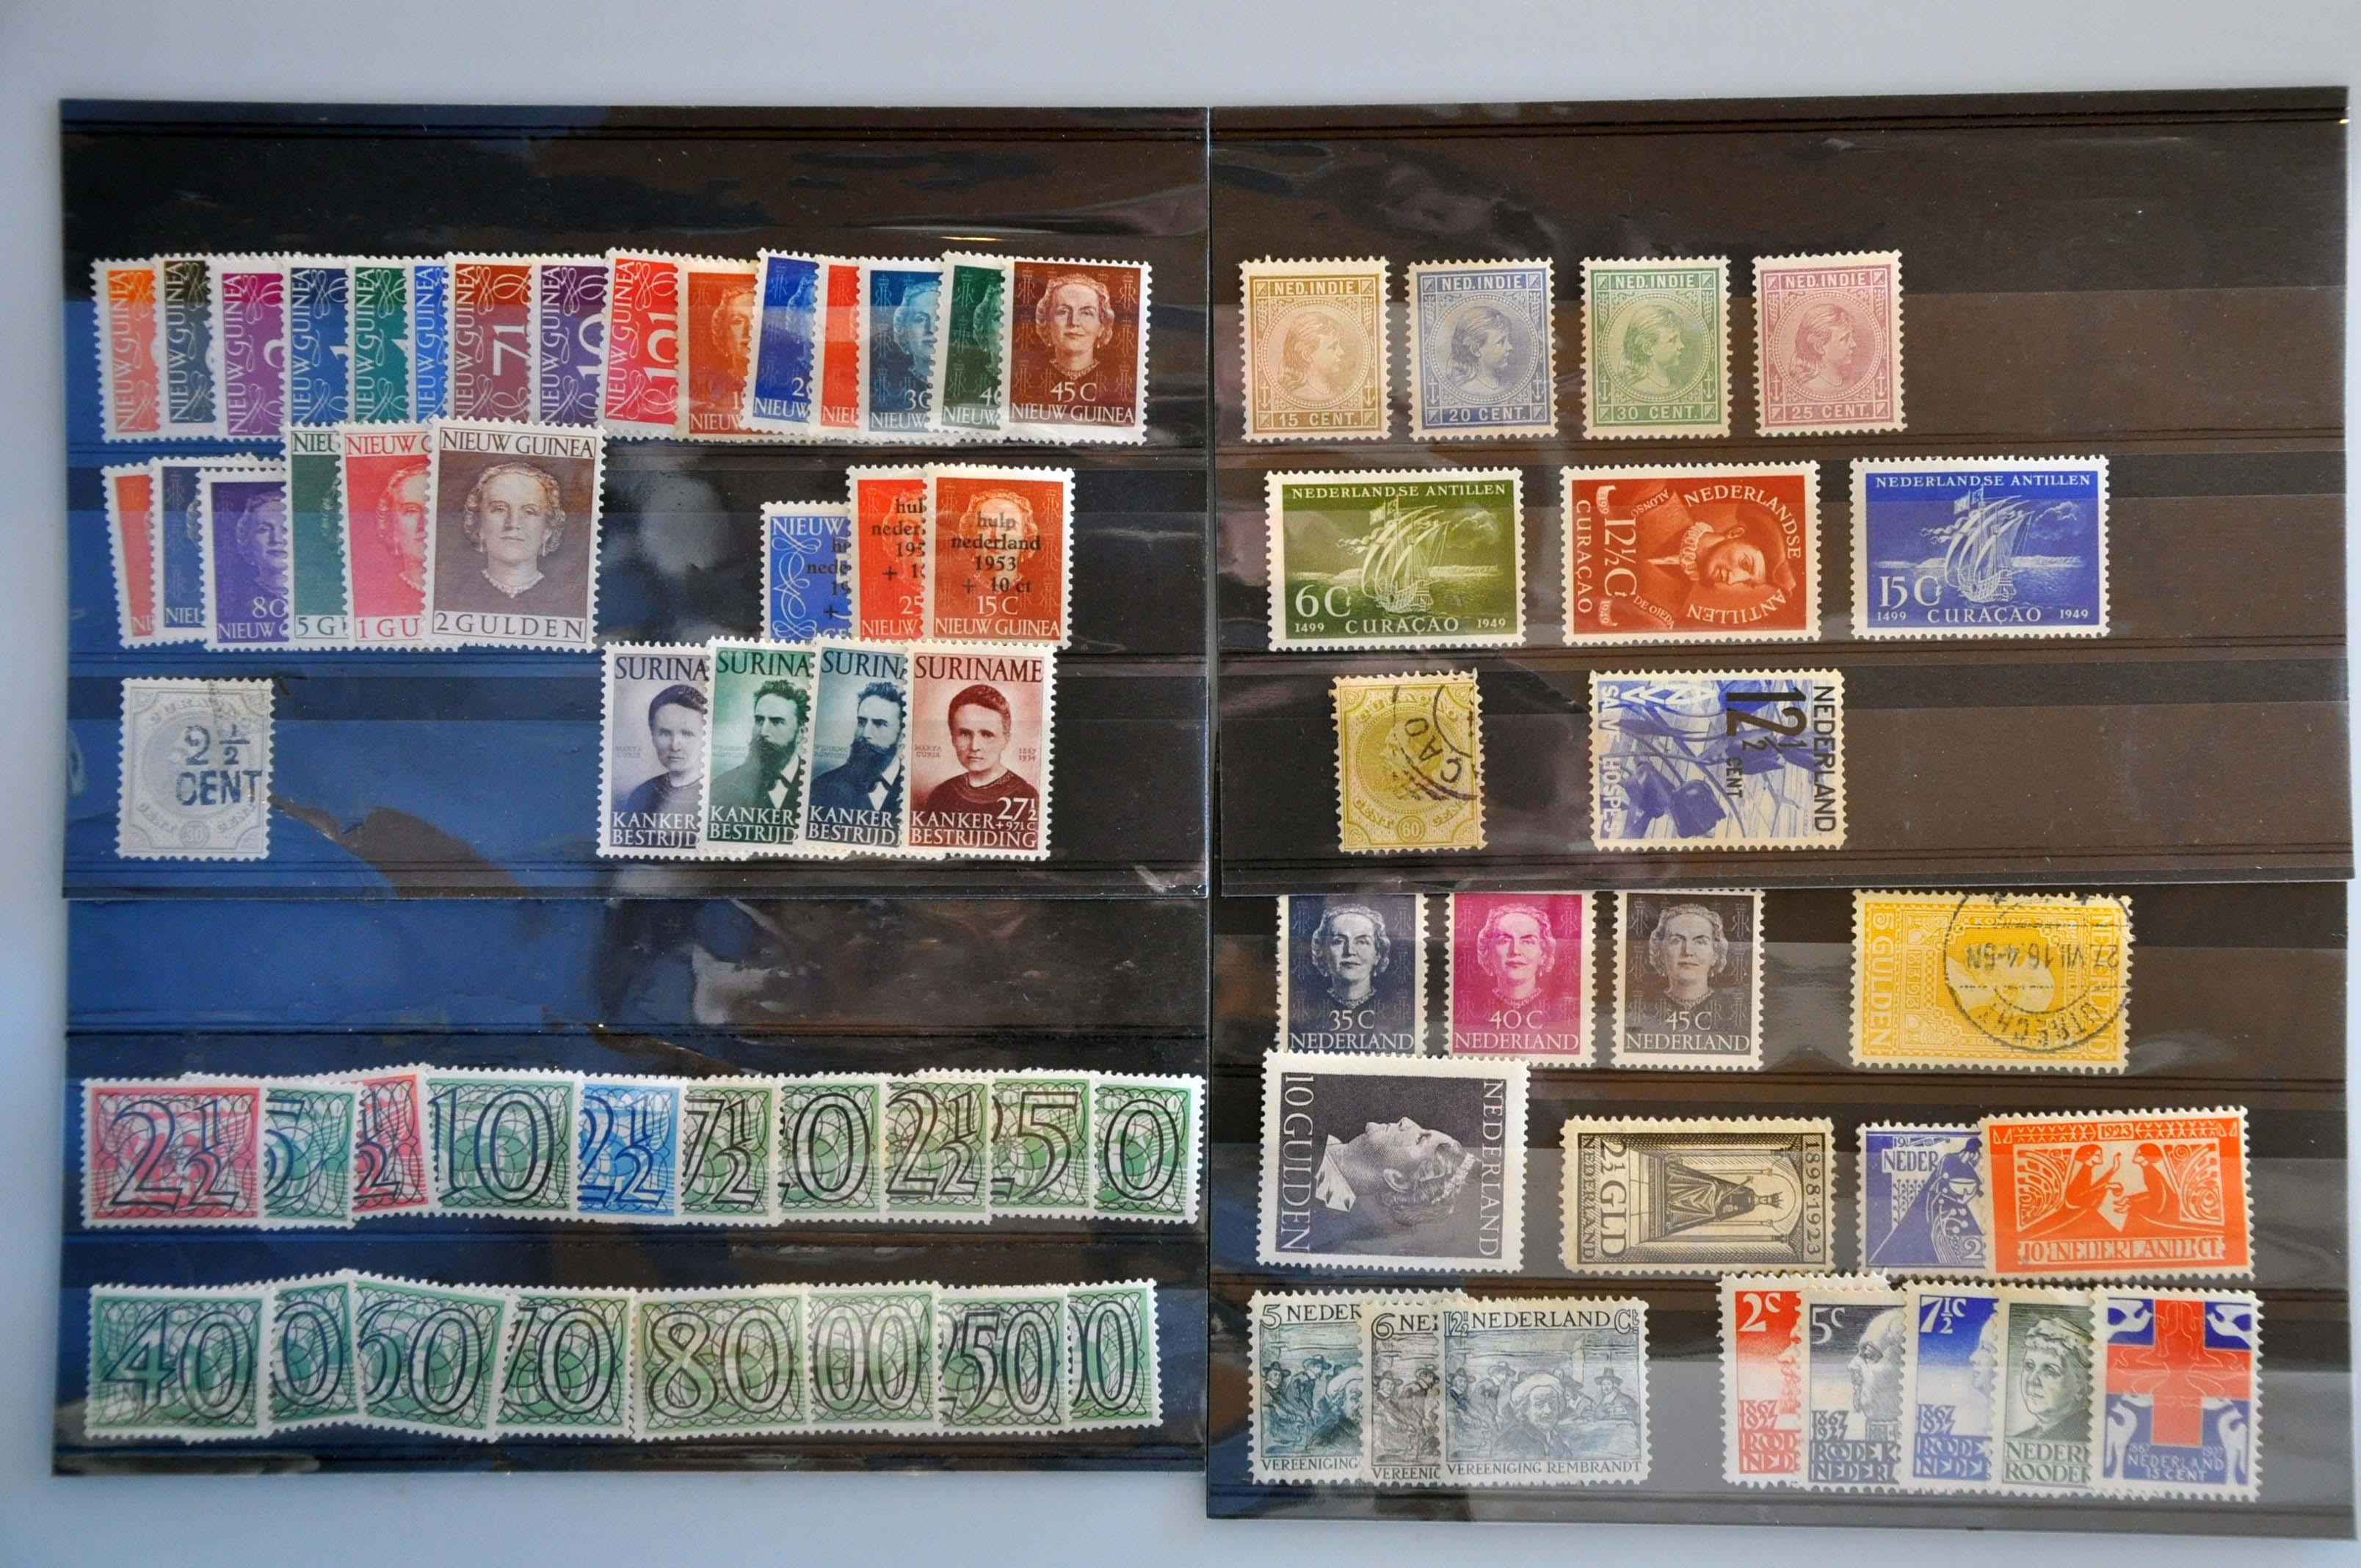 Lot 2799 - Netherlands and former colonies Netherlands and Former Territories -  Corinphila Veilingen Auction 245-246 Day 3 - Netherlands and former colonies - Single lots, Collections and lots, Boxes and literature